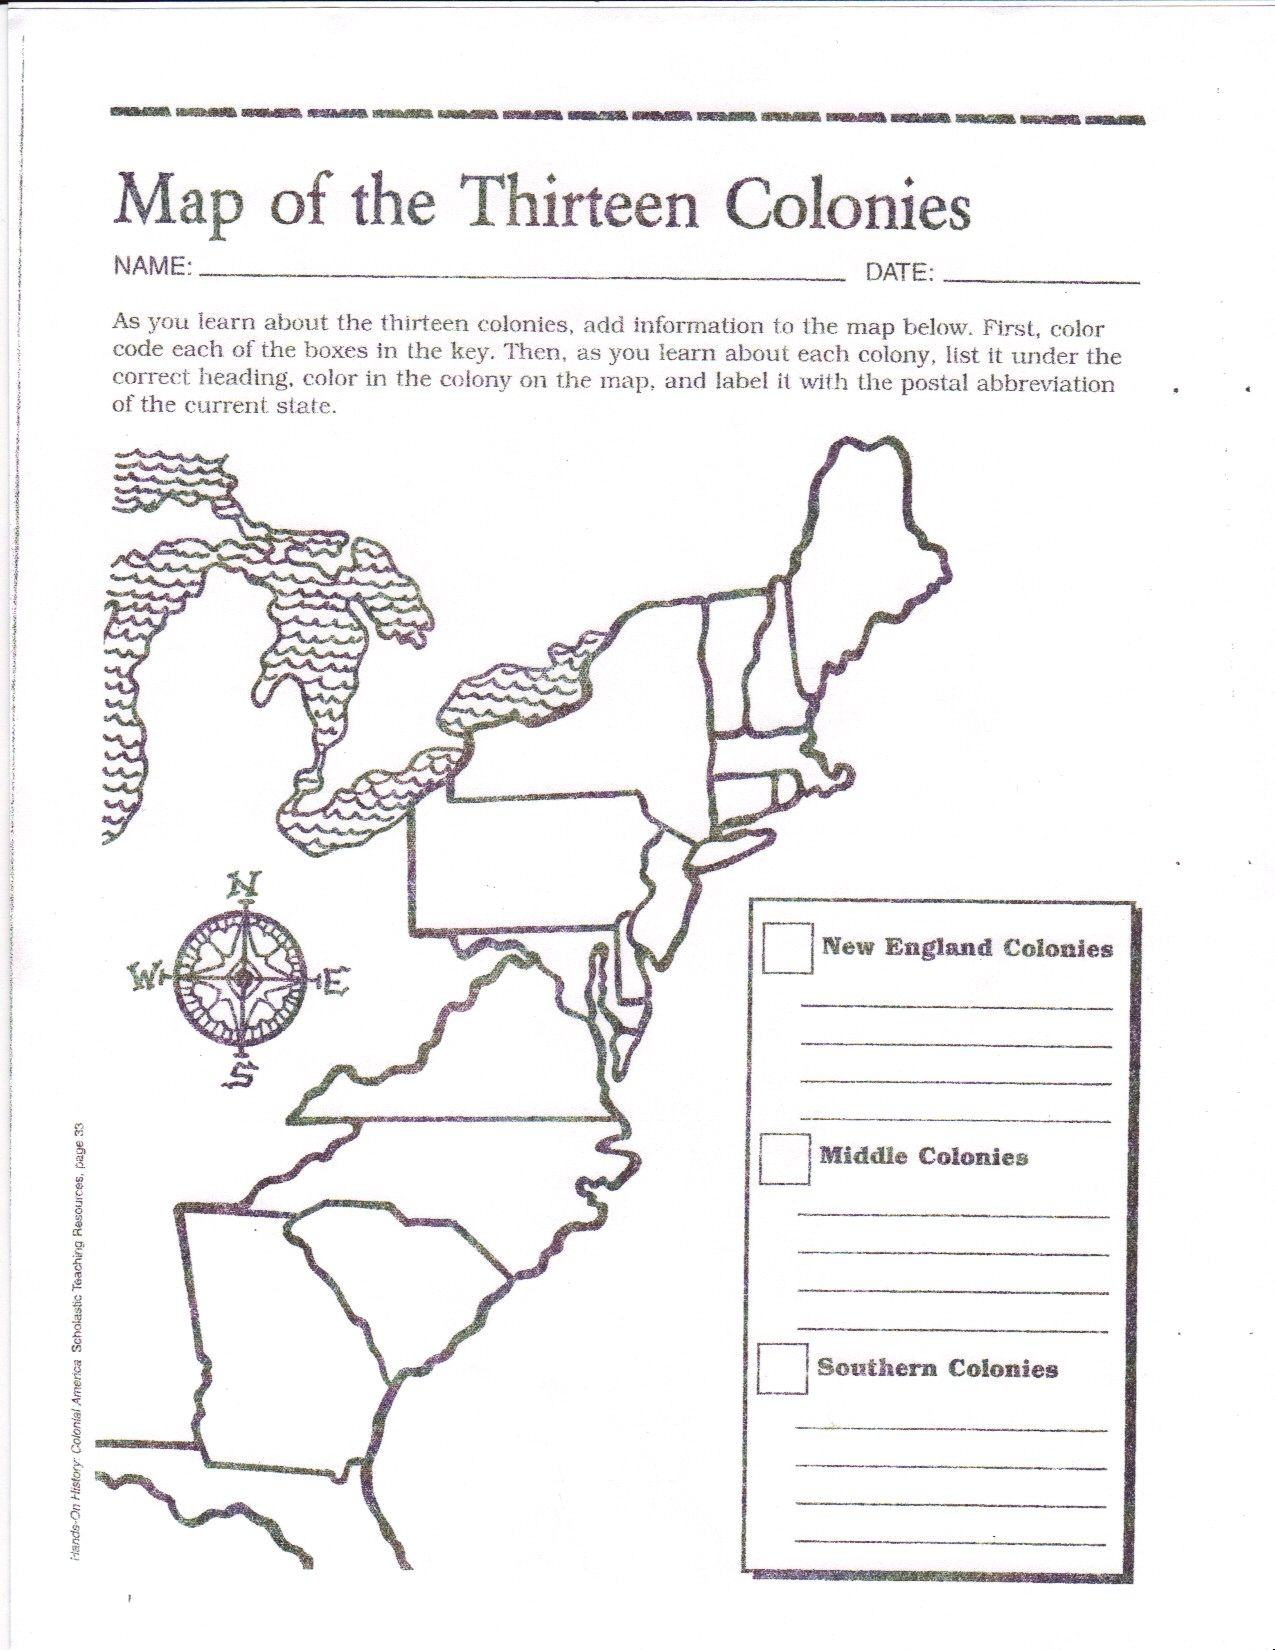 Free Printable 13 Colonies Map … | Activities | 7Th G… - 13 Colonies Blank Map Printable